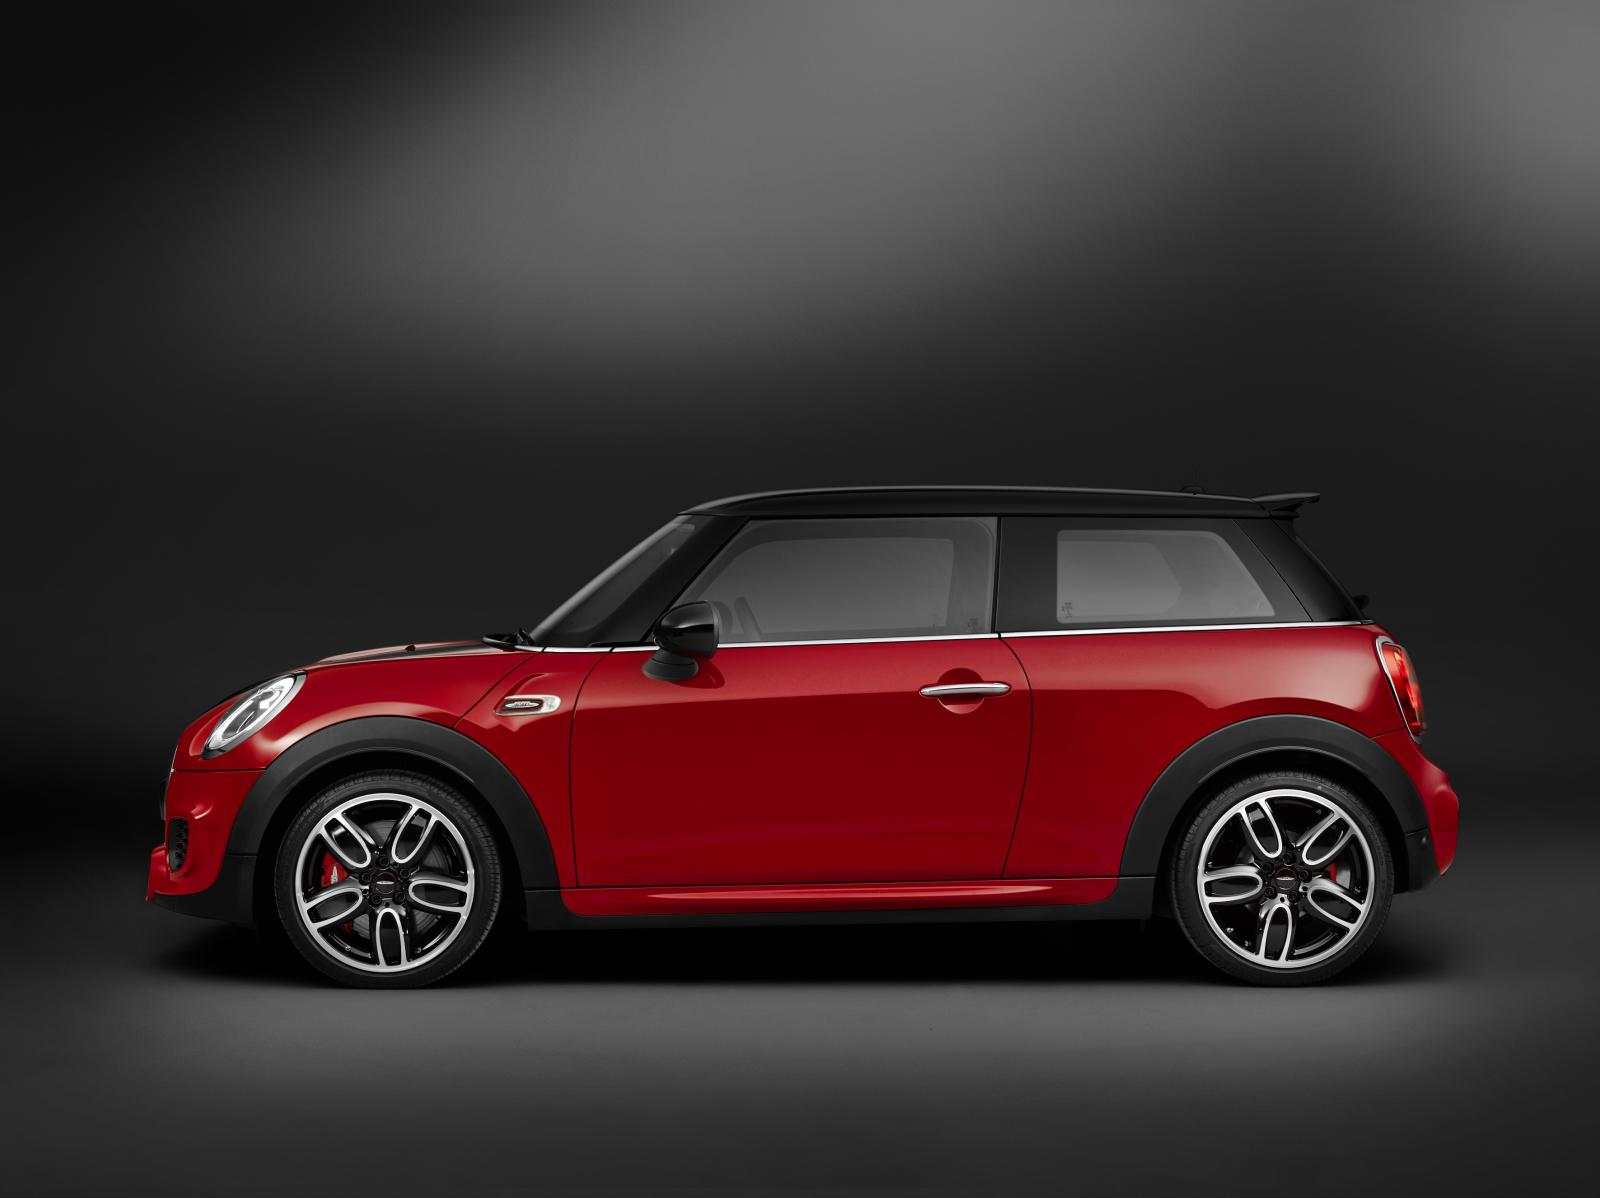 mini cars news 2015 mini jcw pricing and specification. Black Bedroom Furniture Sets. Home Design Ideas